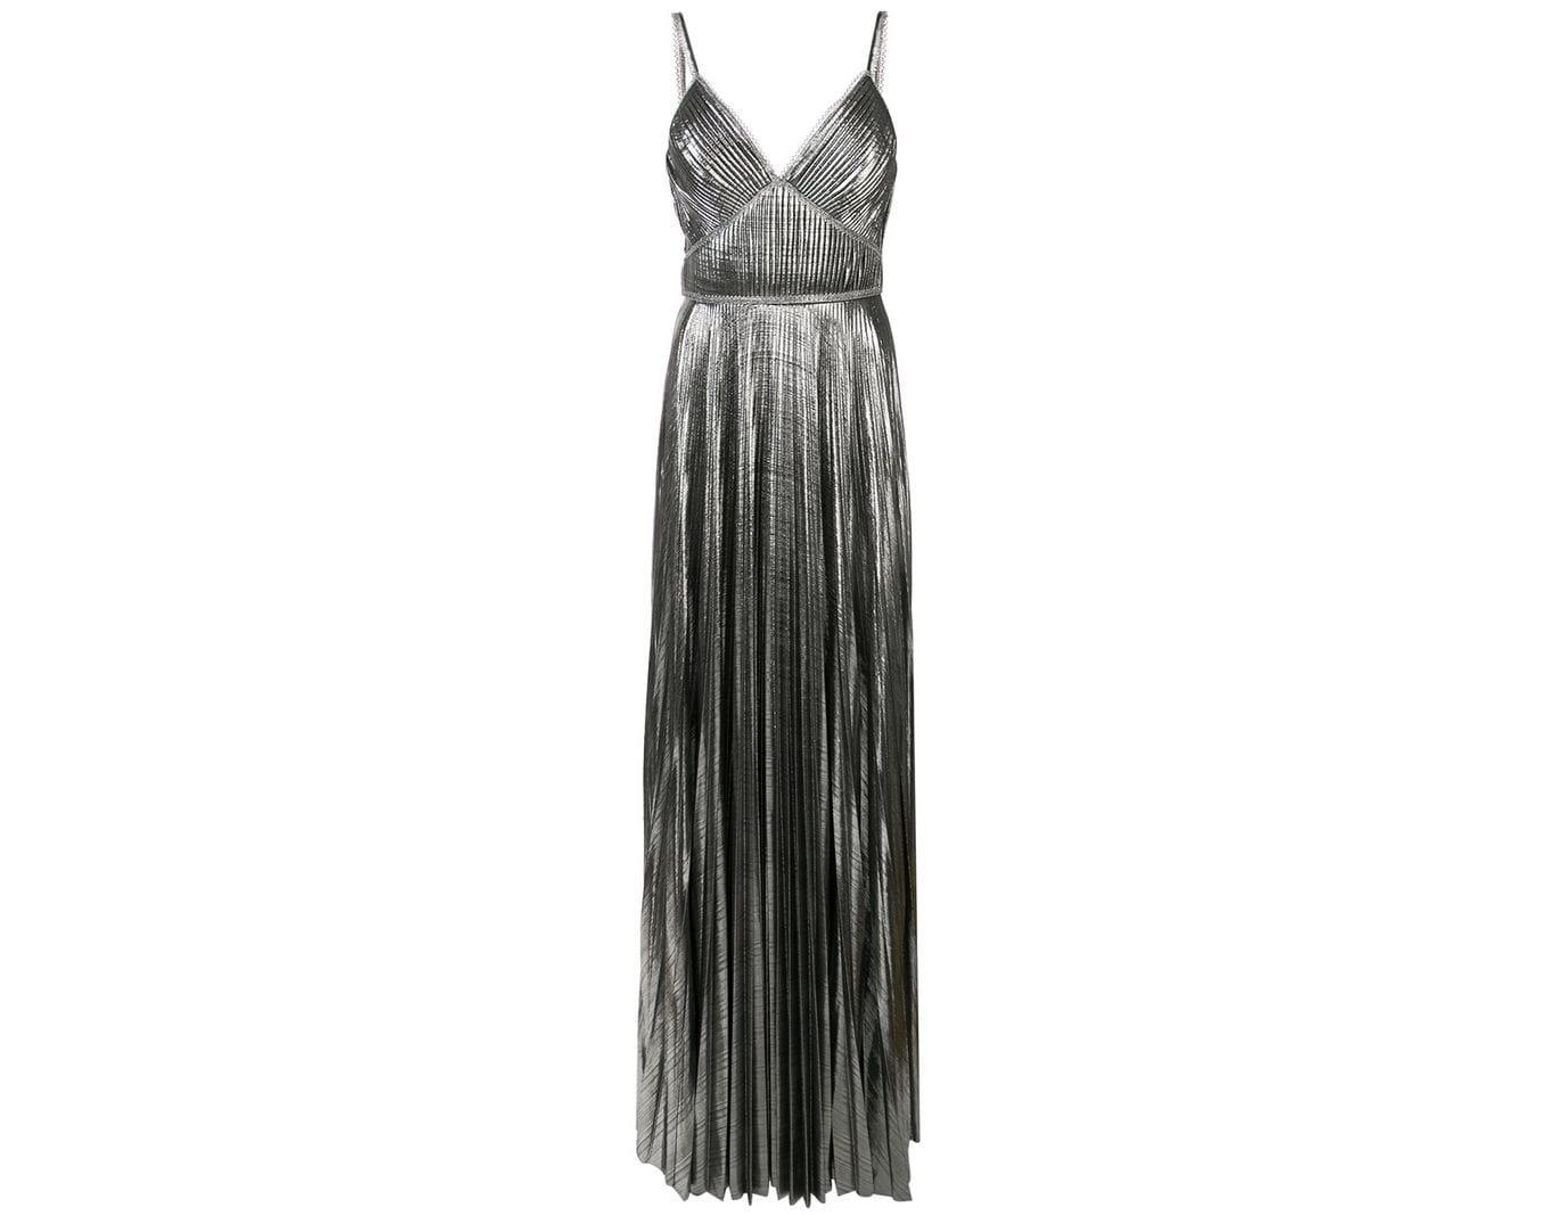 2a1d5b2383 Marchesa notte Pleated Metallic Gown in Metallic - Save 6% - Lyst